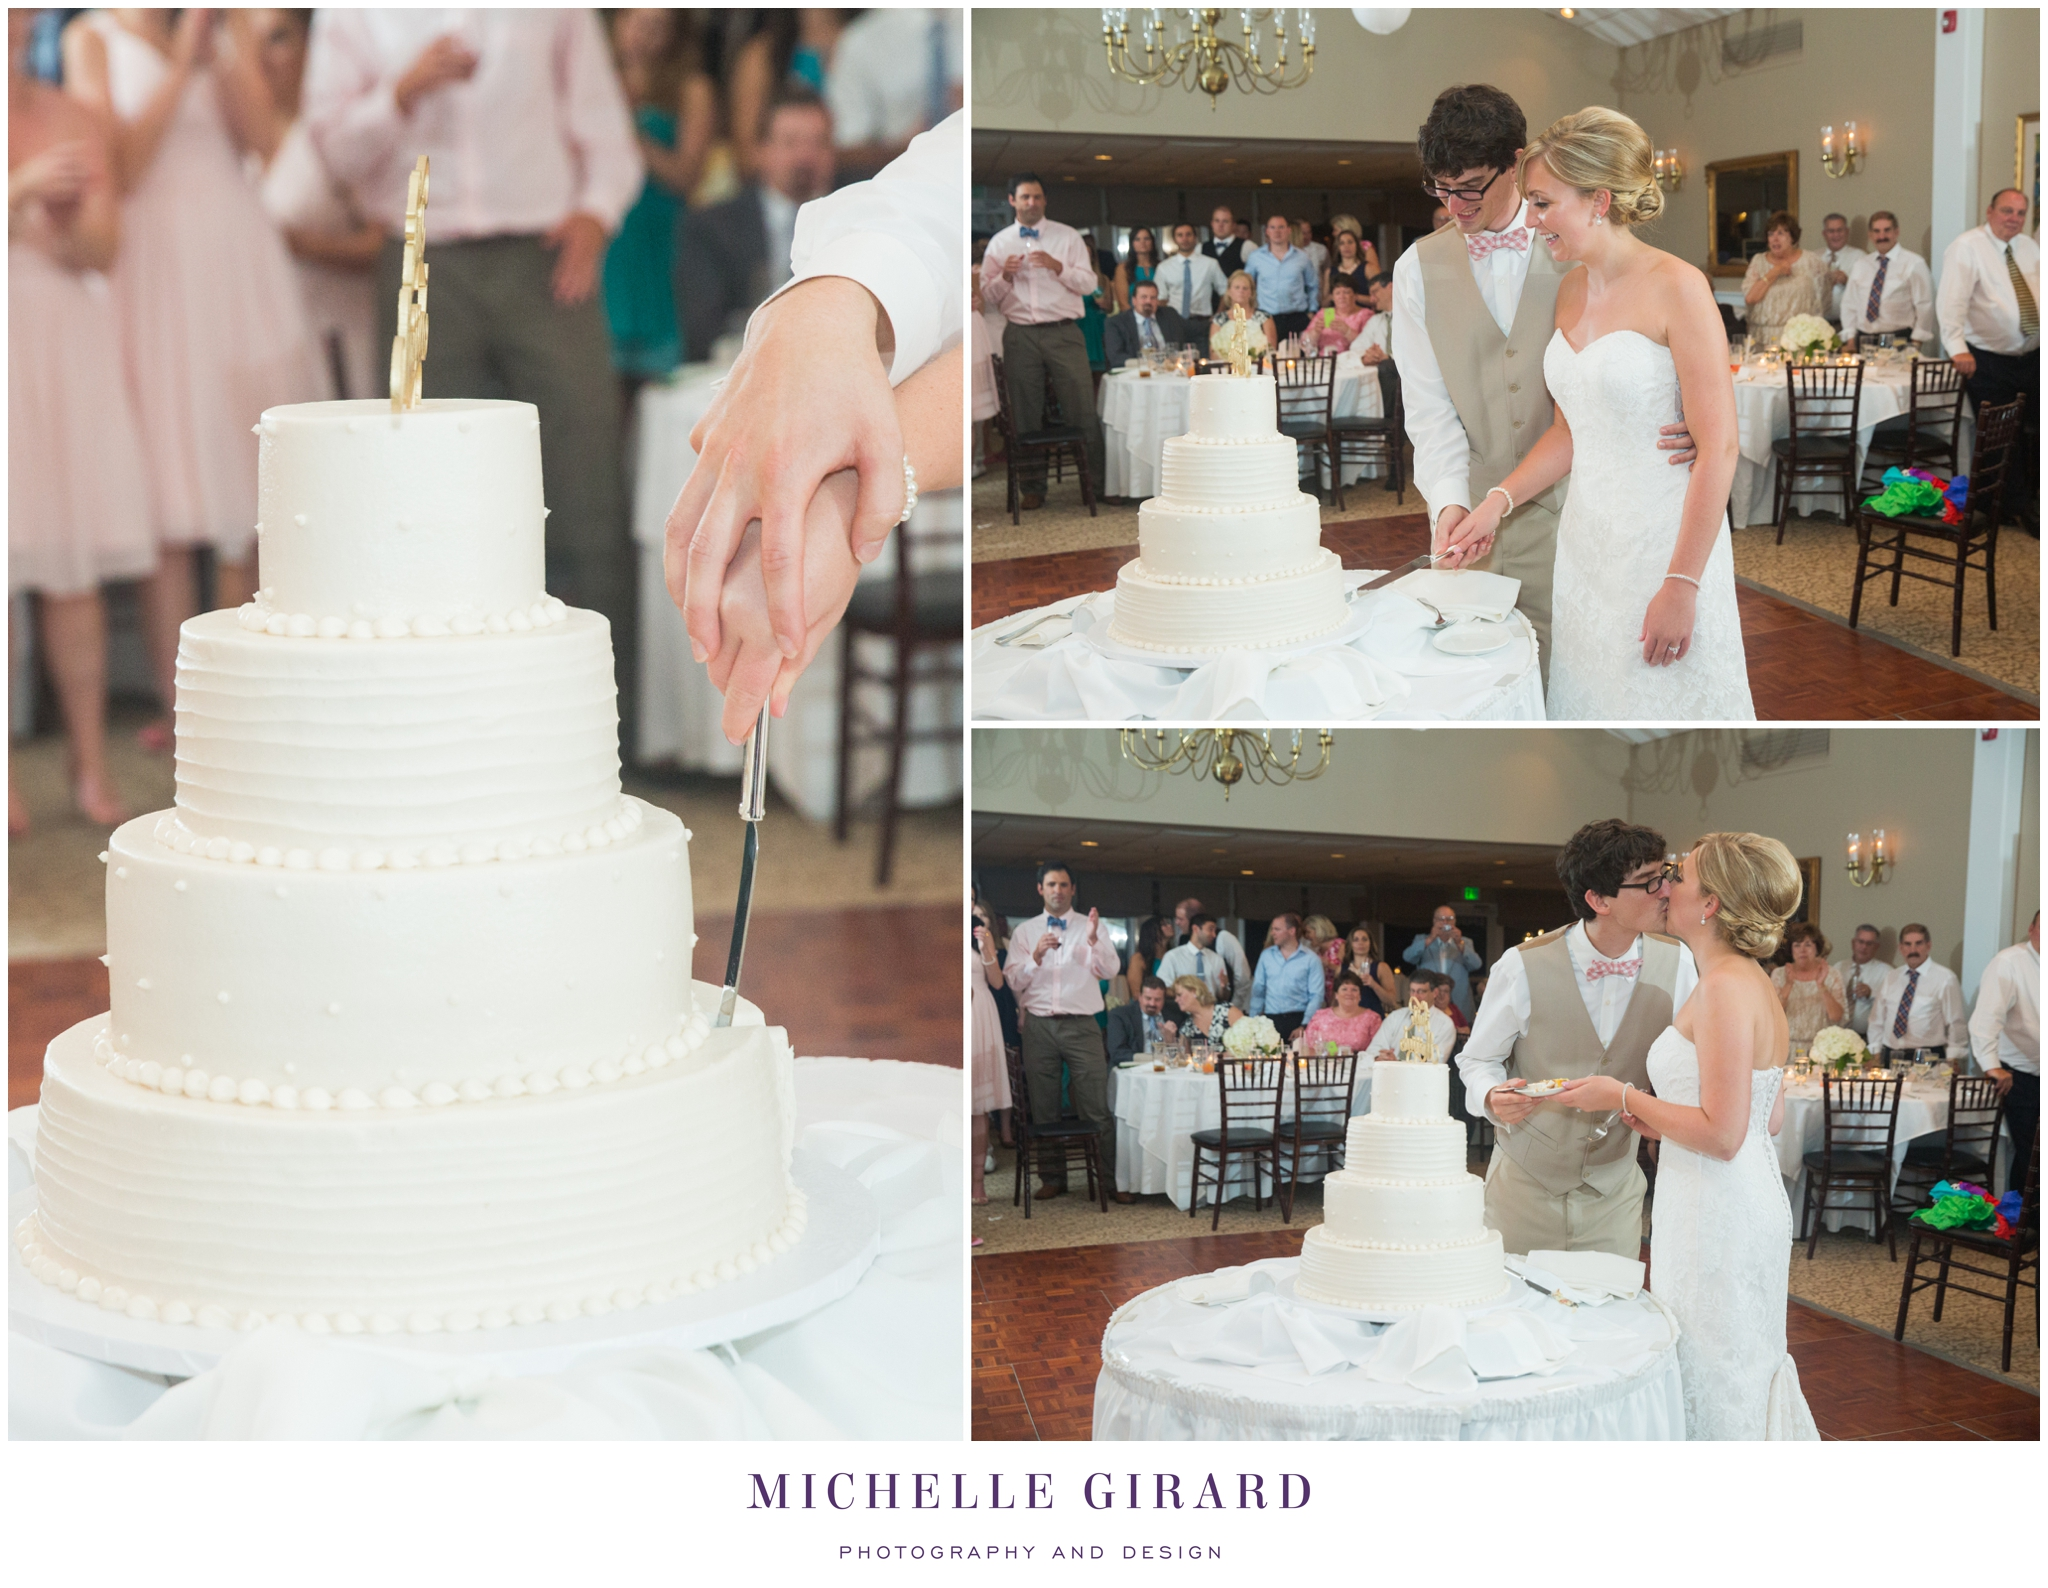 FarmsCountryClub_SummerWedding_MichelleGirardPhotography22.jpg